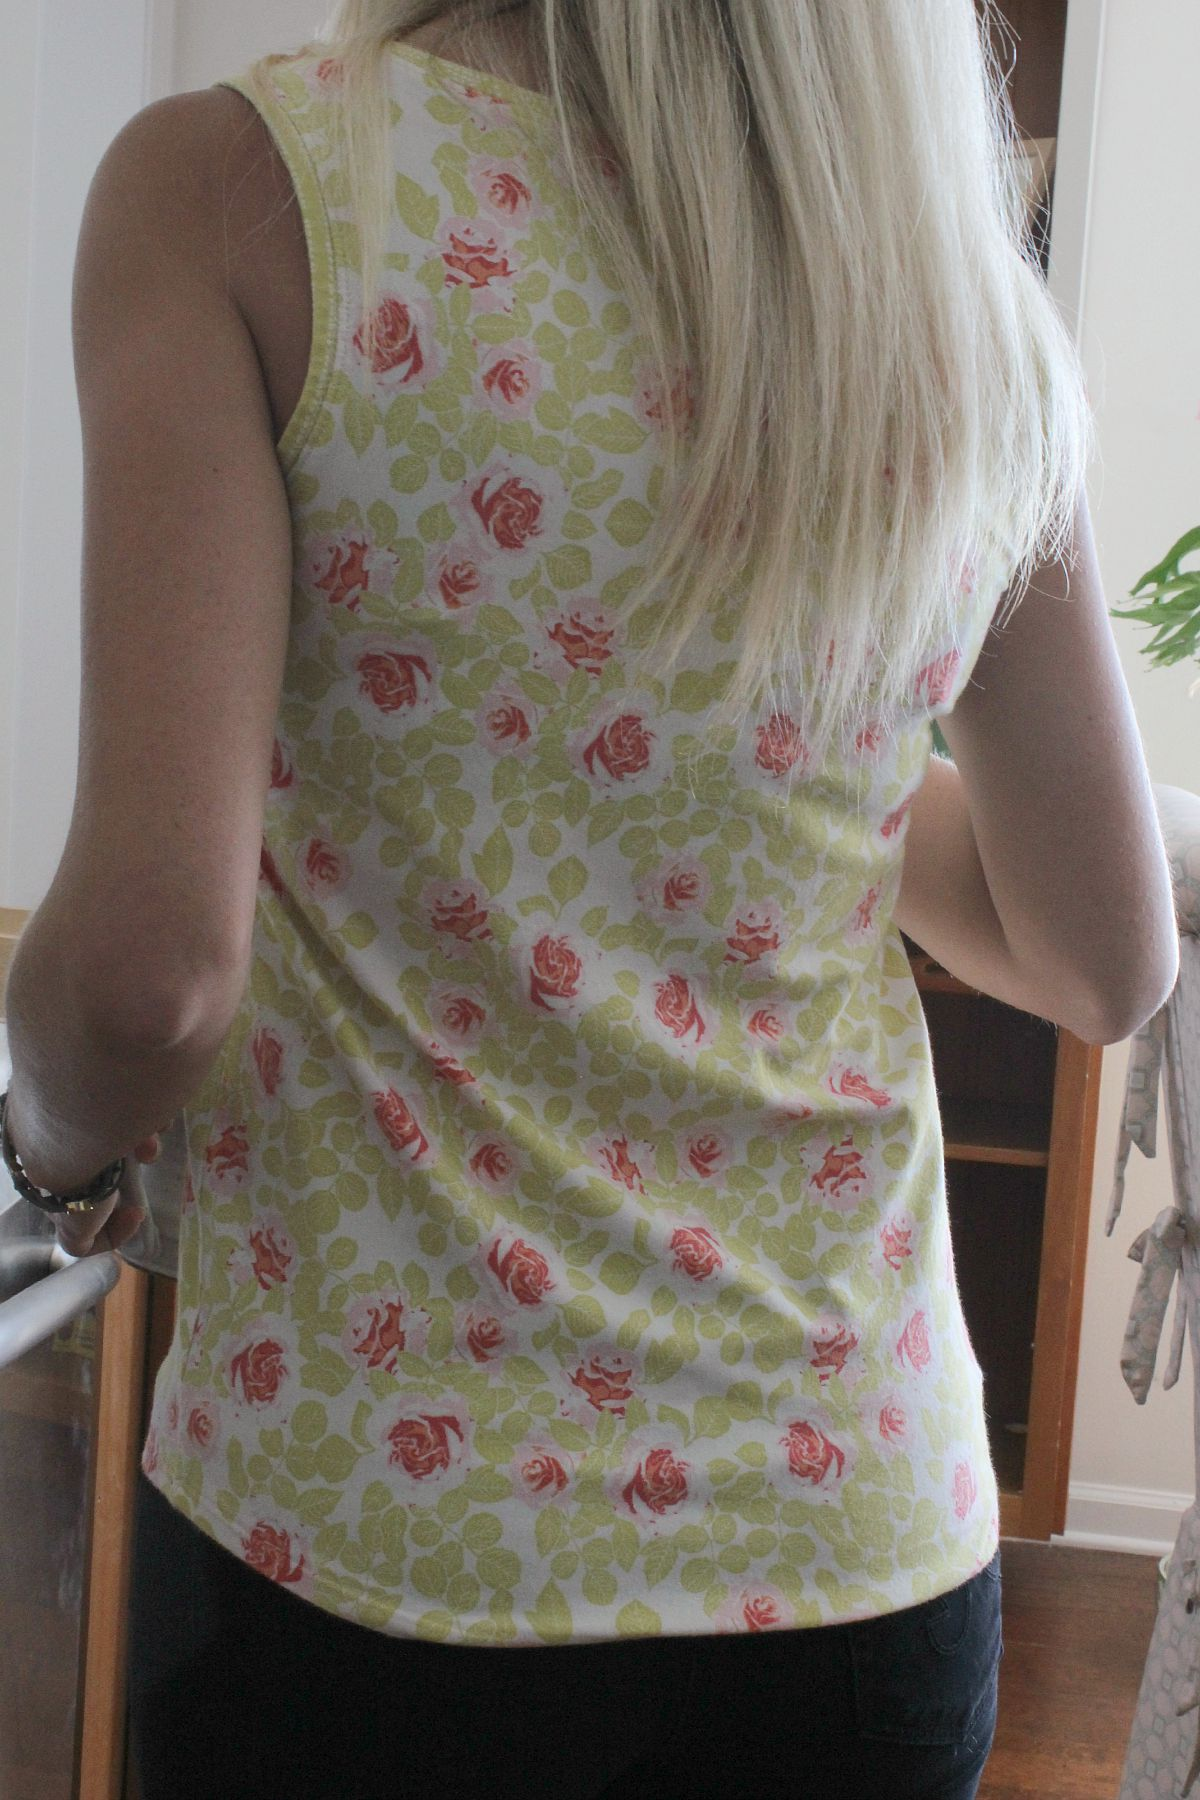 Back view, Pruning Roses Citrus by Bonnie Christine for Art Gallery Fabrics